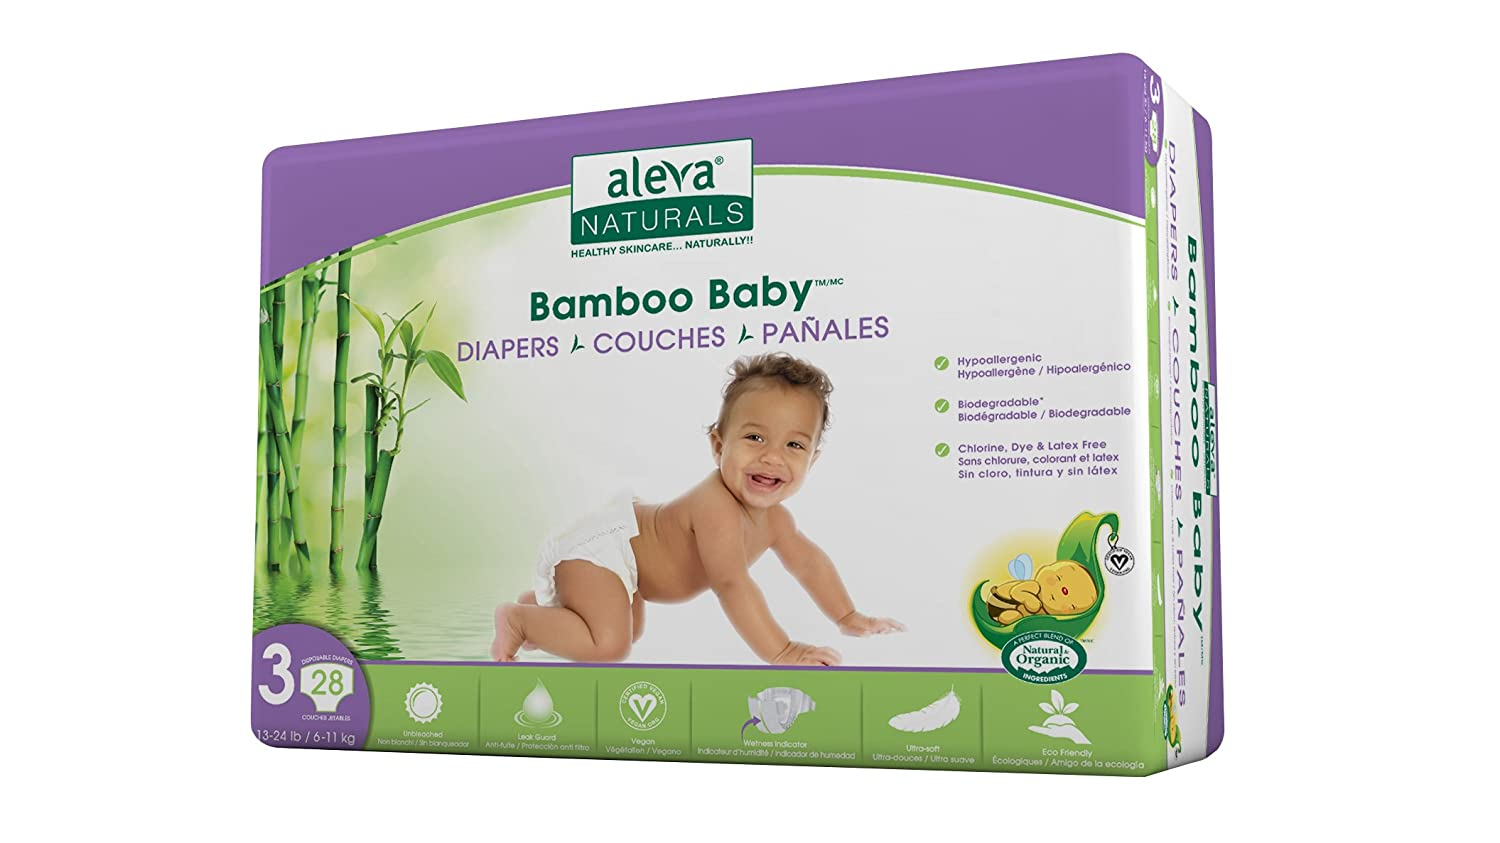 Amazon.com: Aleva Naturals Bamboo Baby Diapers, Size 3, (13-24 lbs / 6-11 kgs) 28 Count: Health & Personal Care